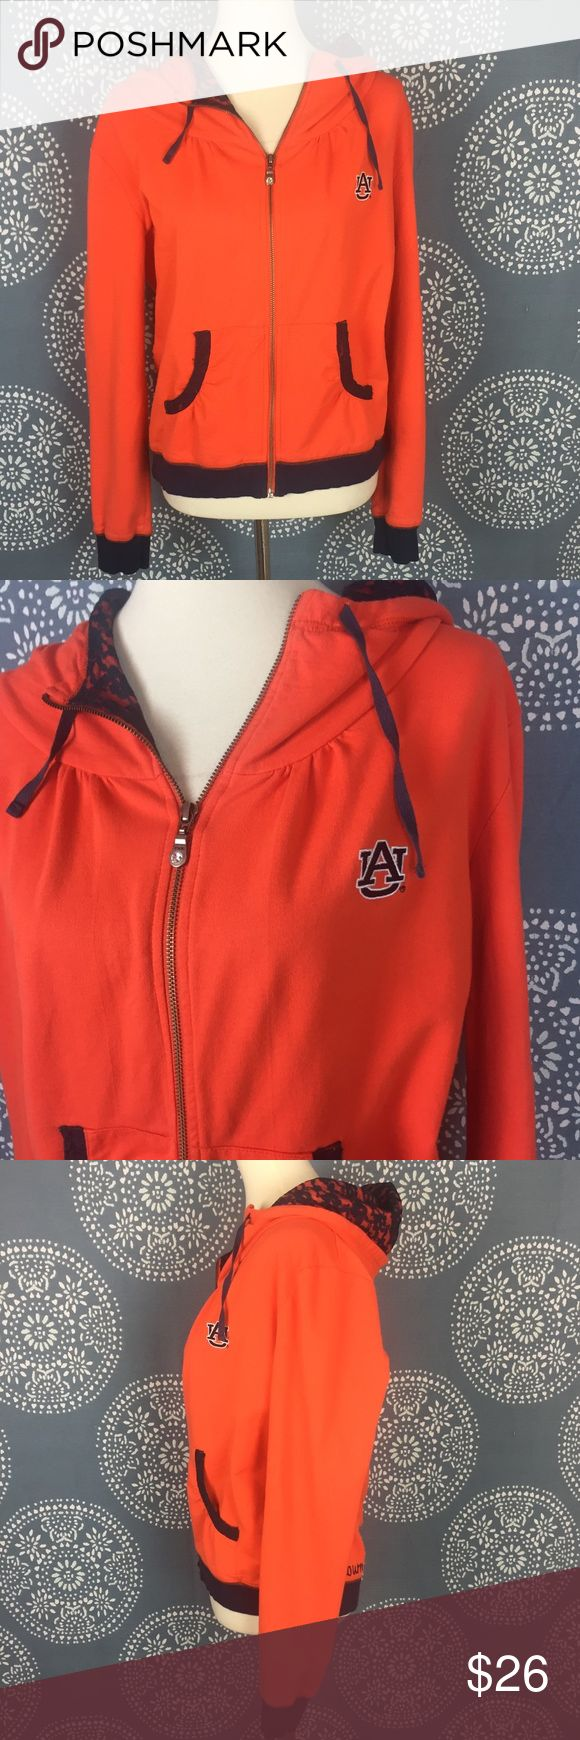 """Ug Apparel Auburn Womens Zip Up Hoodie Ug Apparel zip up Auburn hoodie. It is orange with navy trim and lettering. The inside of the hood and pocket trim are a navy lace. Excellent used condition. 21.5"""" armpit to armpit 23"""" long Ug Apparel Tops Sweatshirts & Hoodies"""